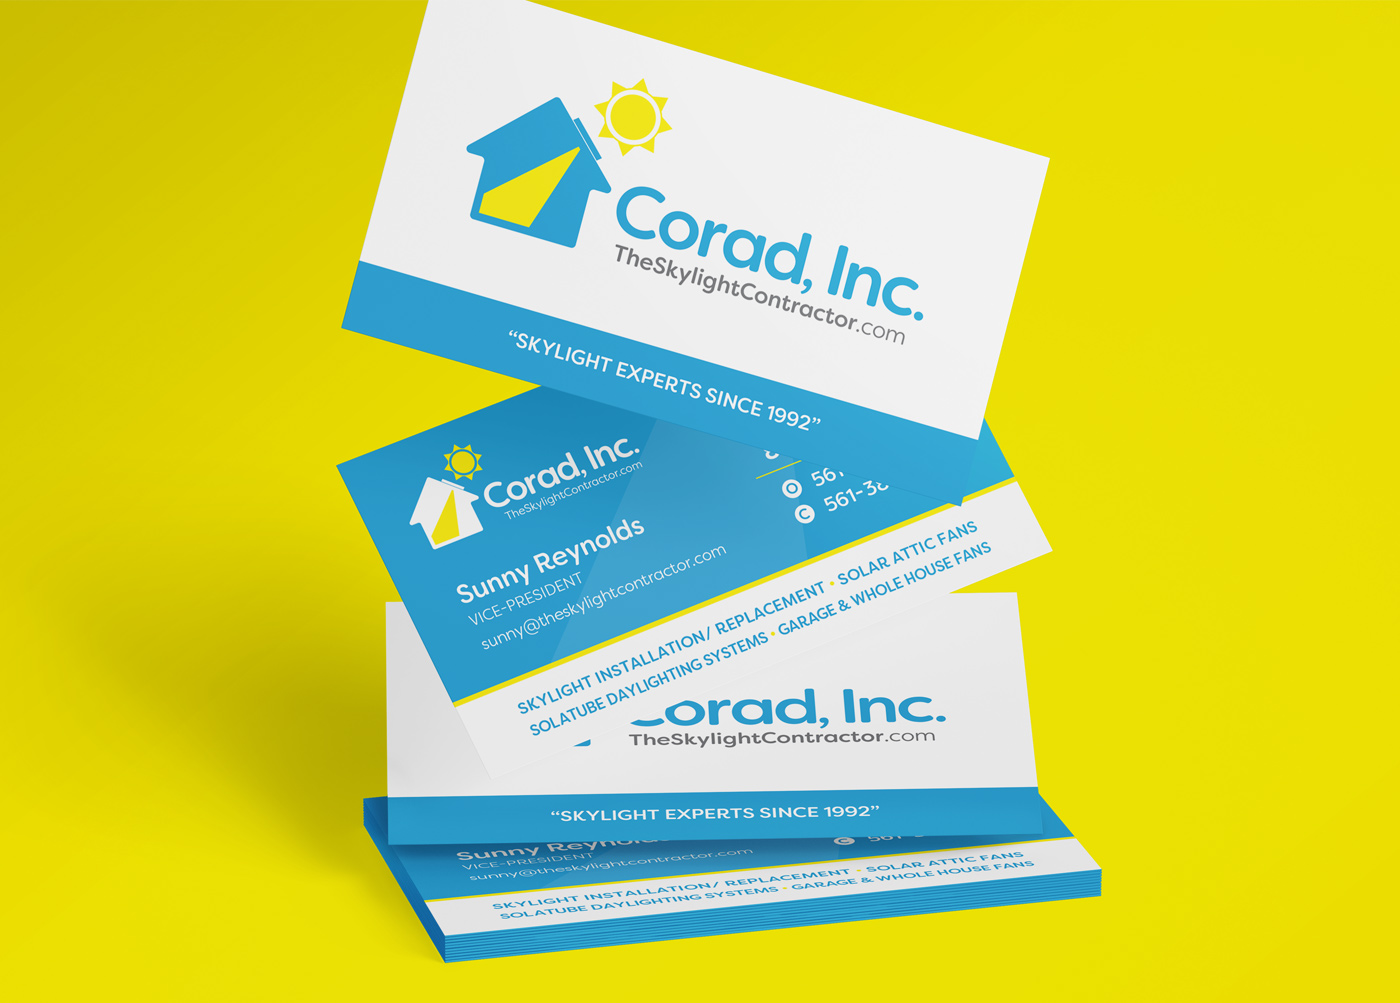 Corad Inc. Logo and Business Cards